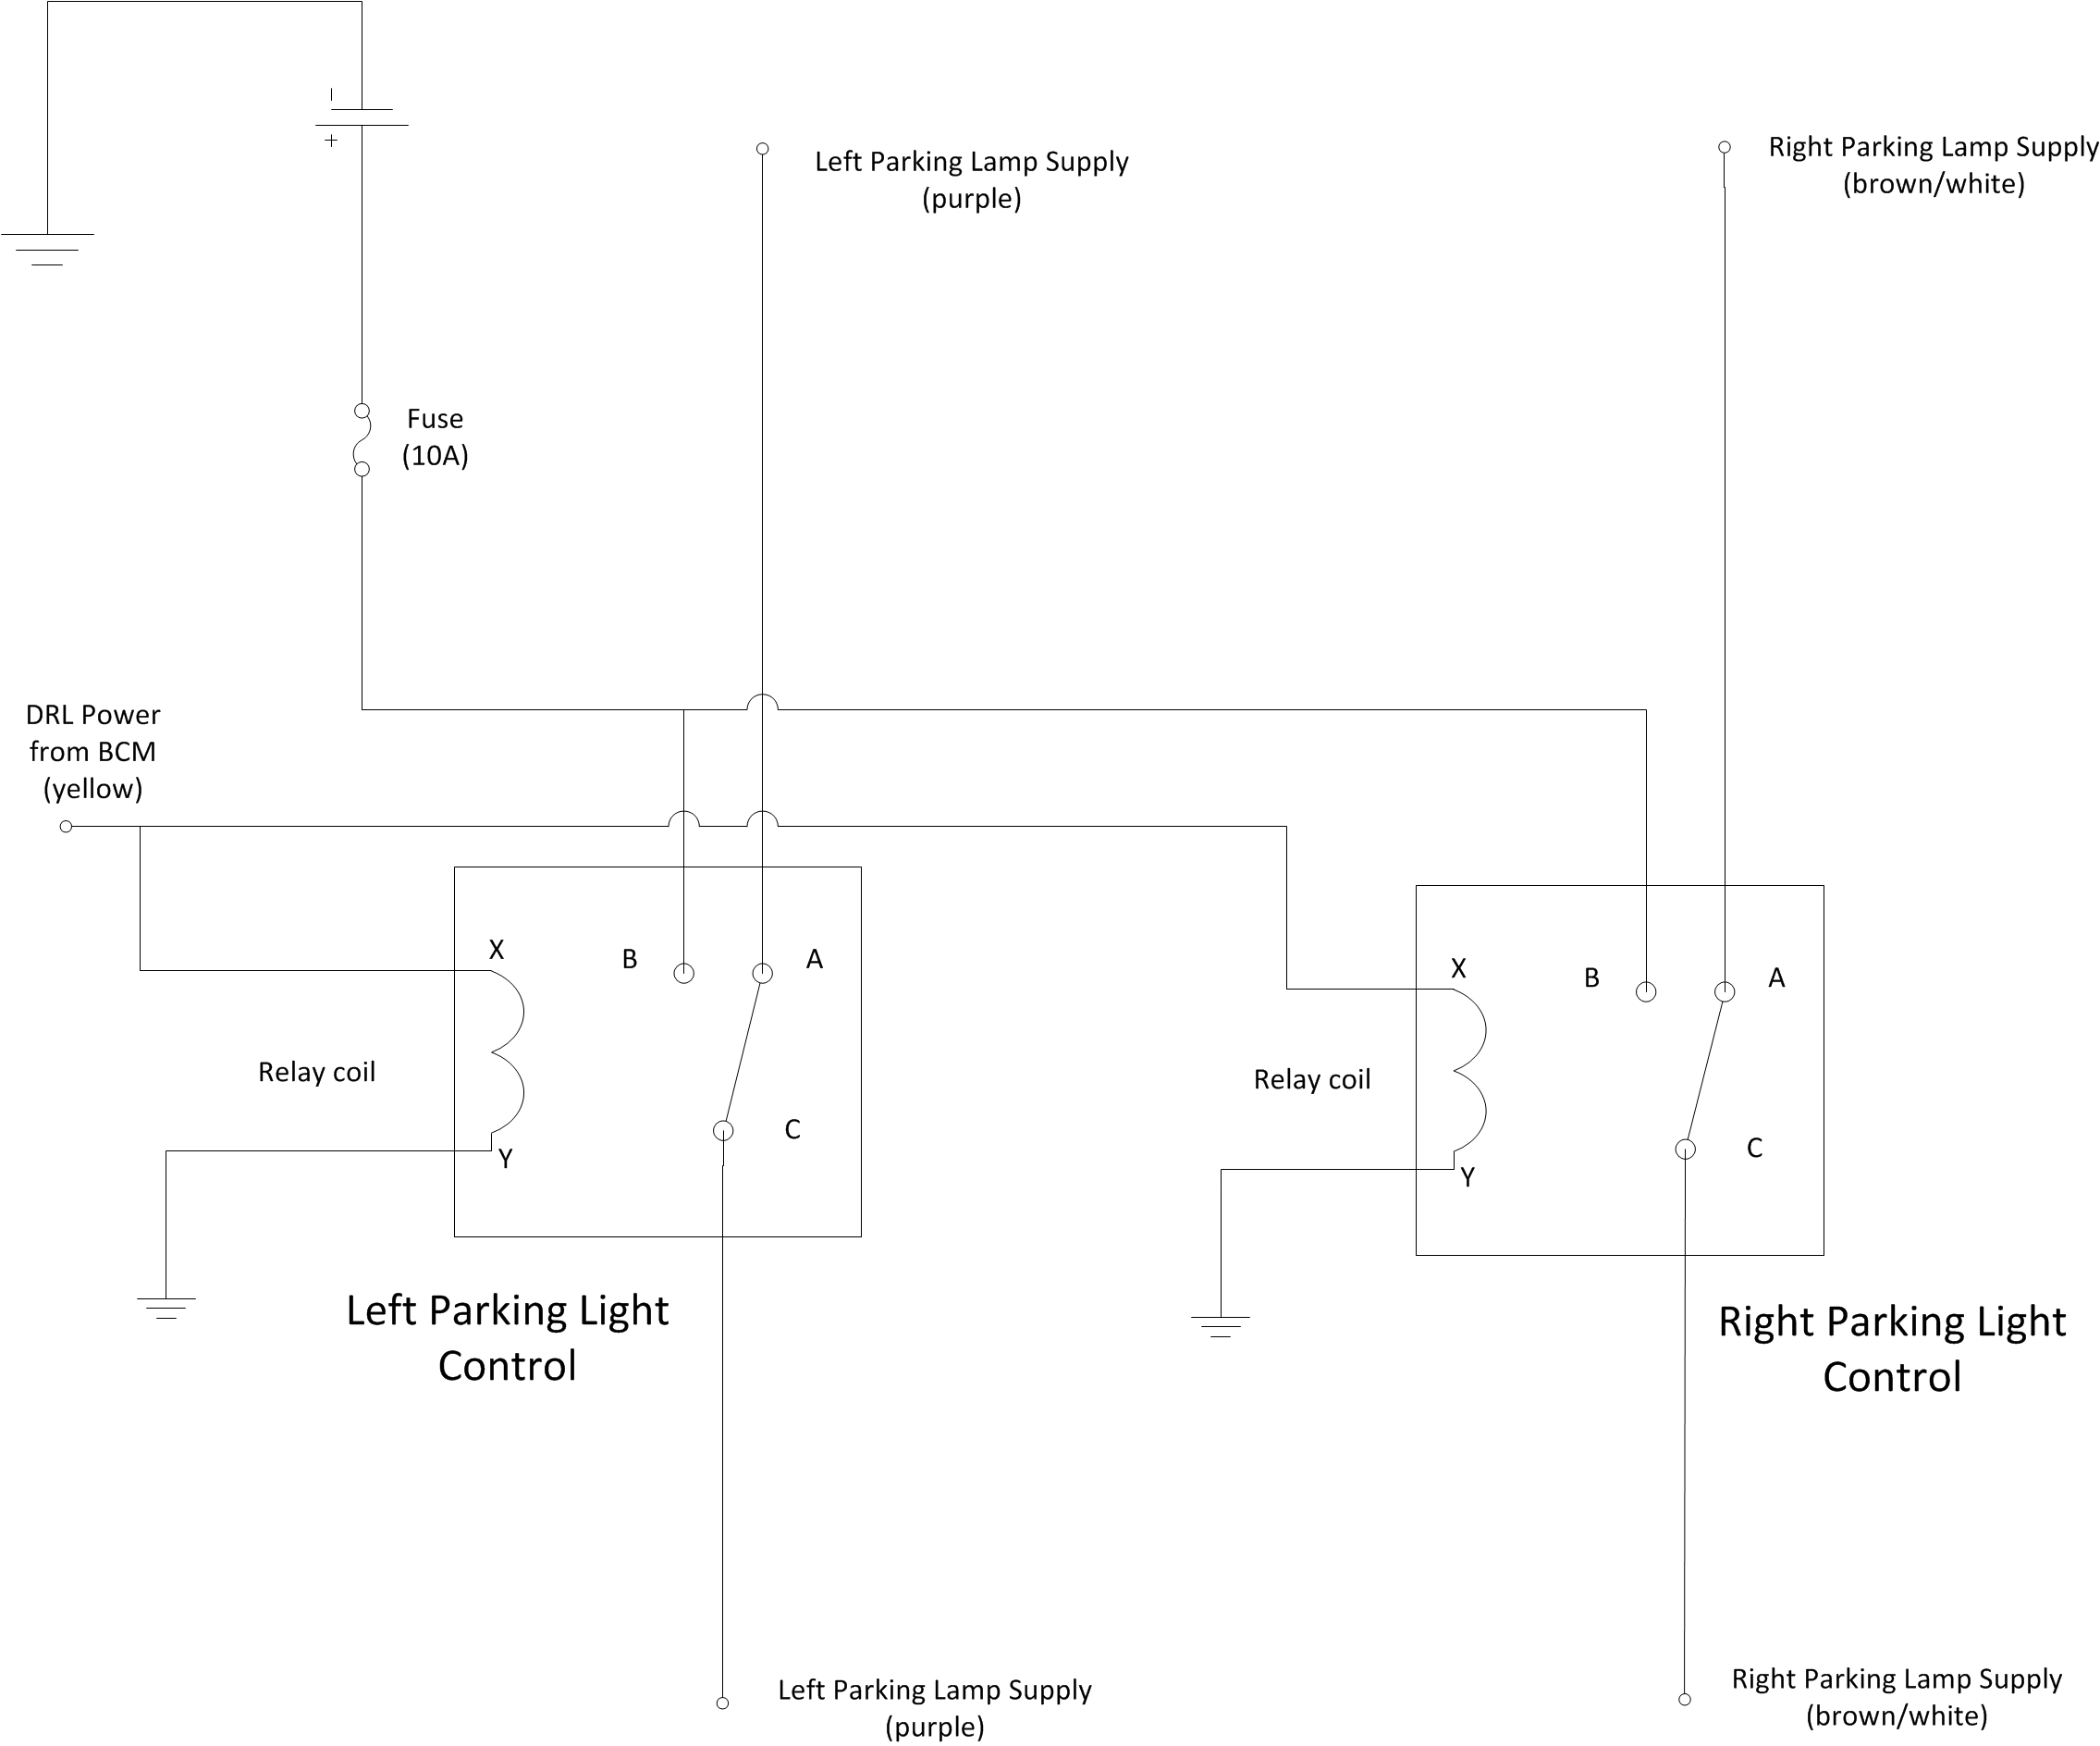 double pole double throw switch wiring diagram switch basics double pole double throw switch wiring diagram switch basics th diy parking lamps as